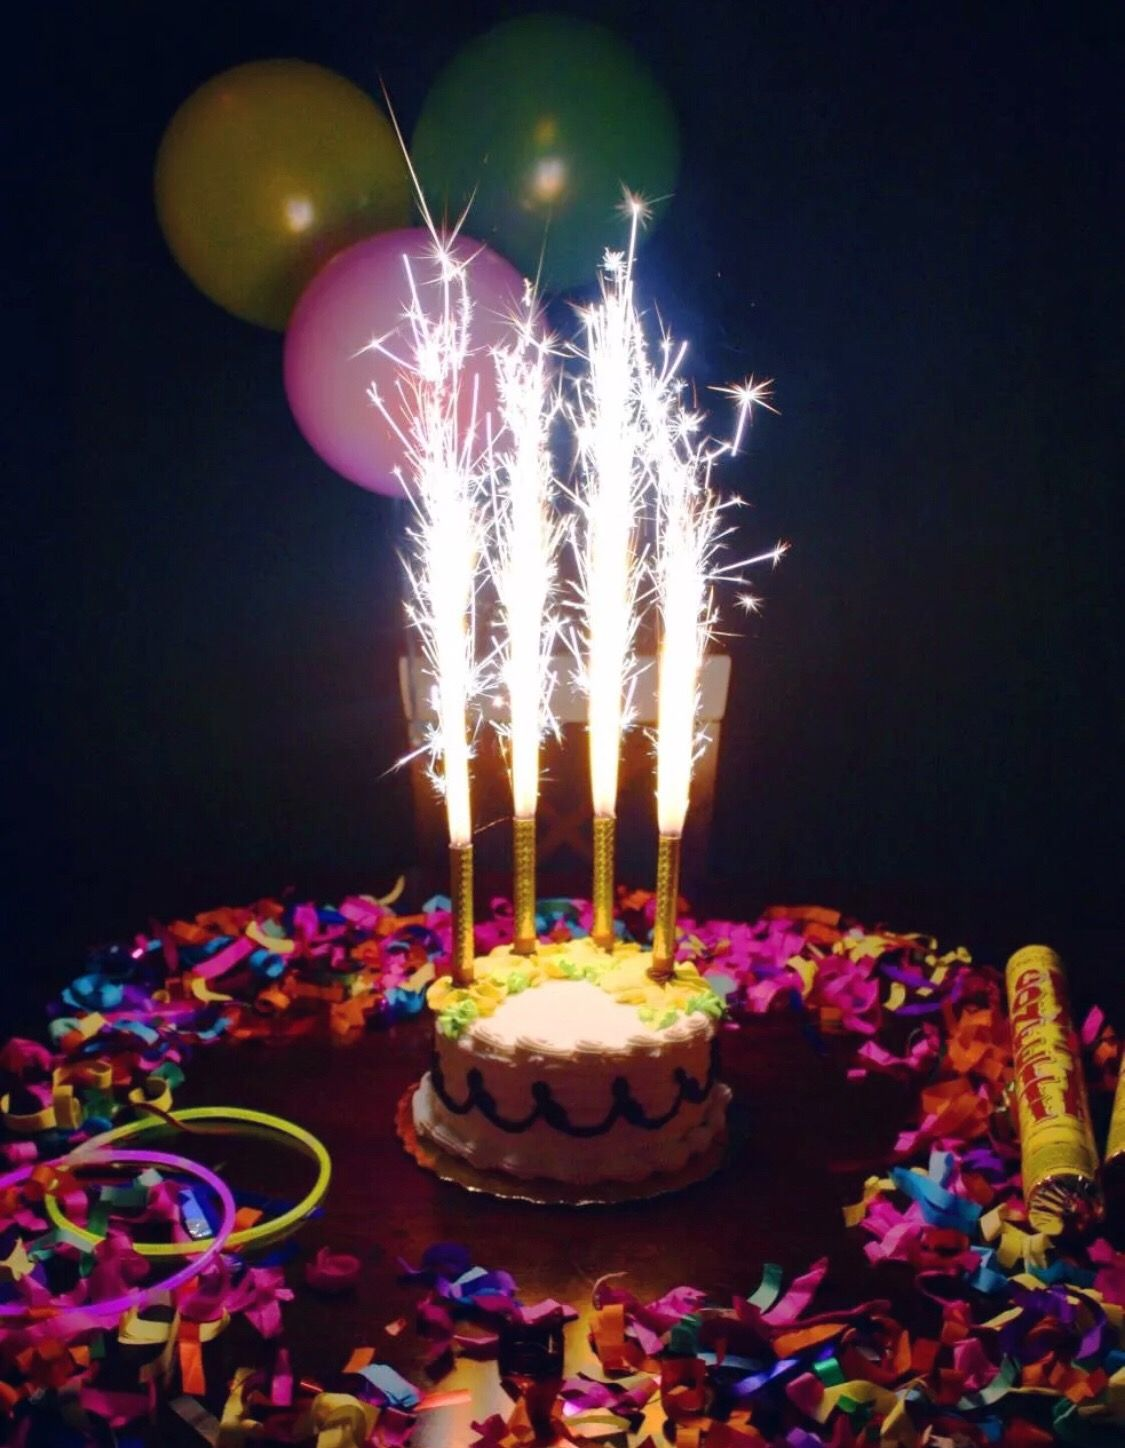 1 pack of 4 Birthday Candles (Sparklers) Birthday cake